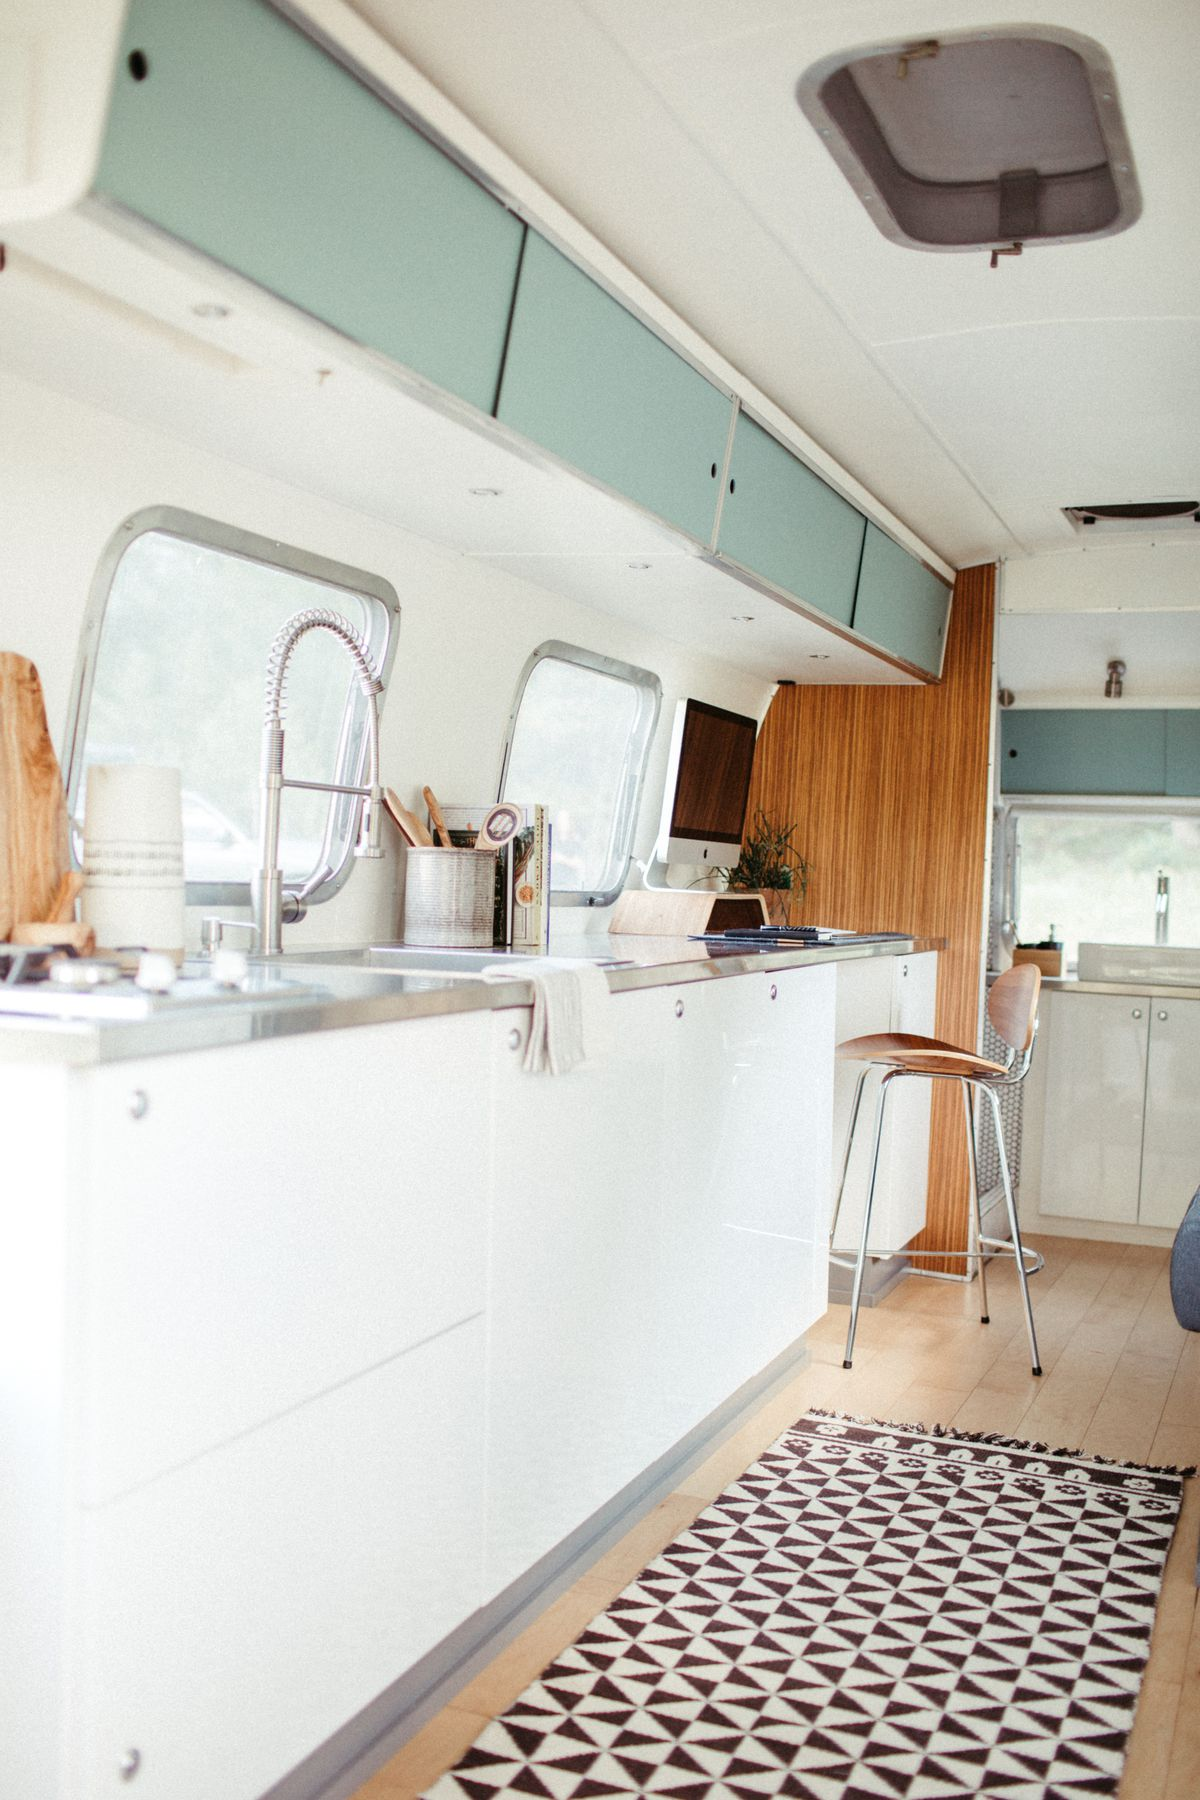 A look at the kitchen area inside a travel trailer, with white cabinets and stainless steel counters.